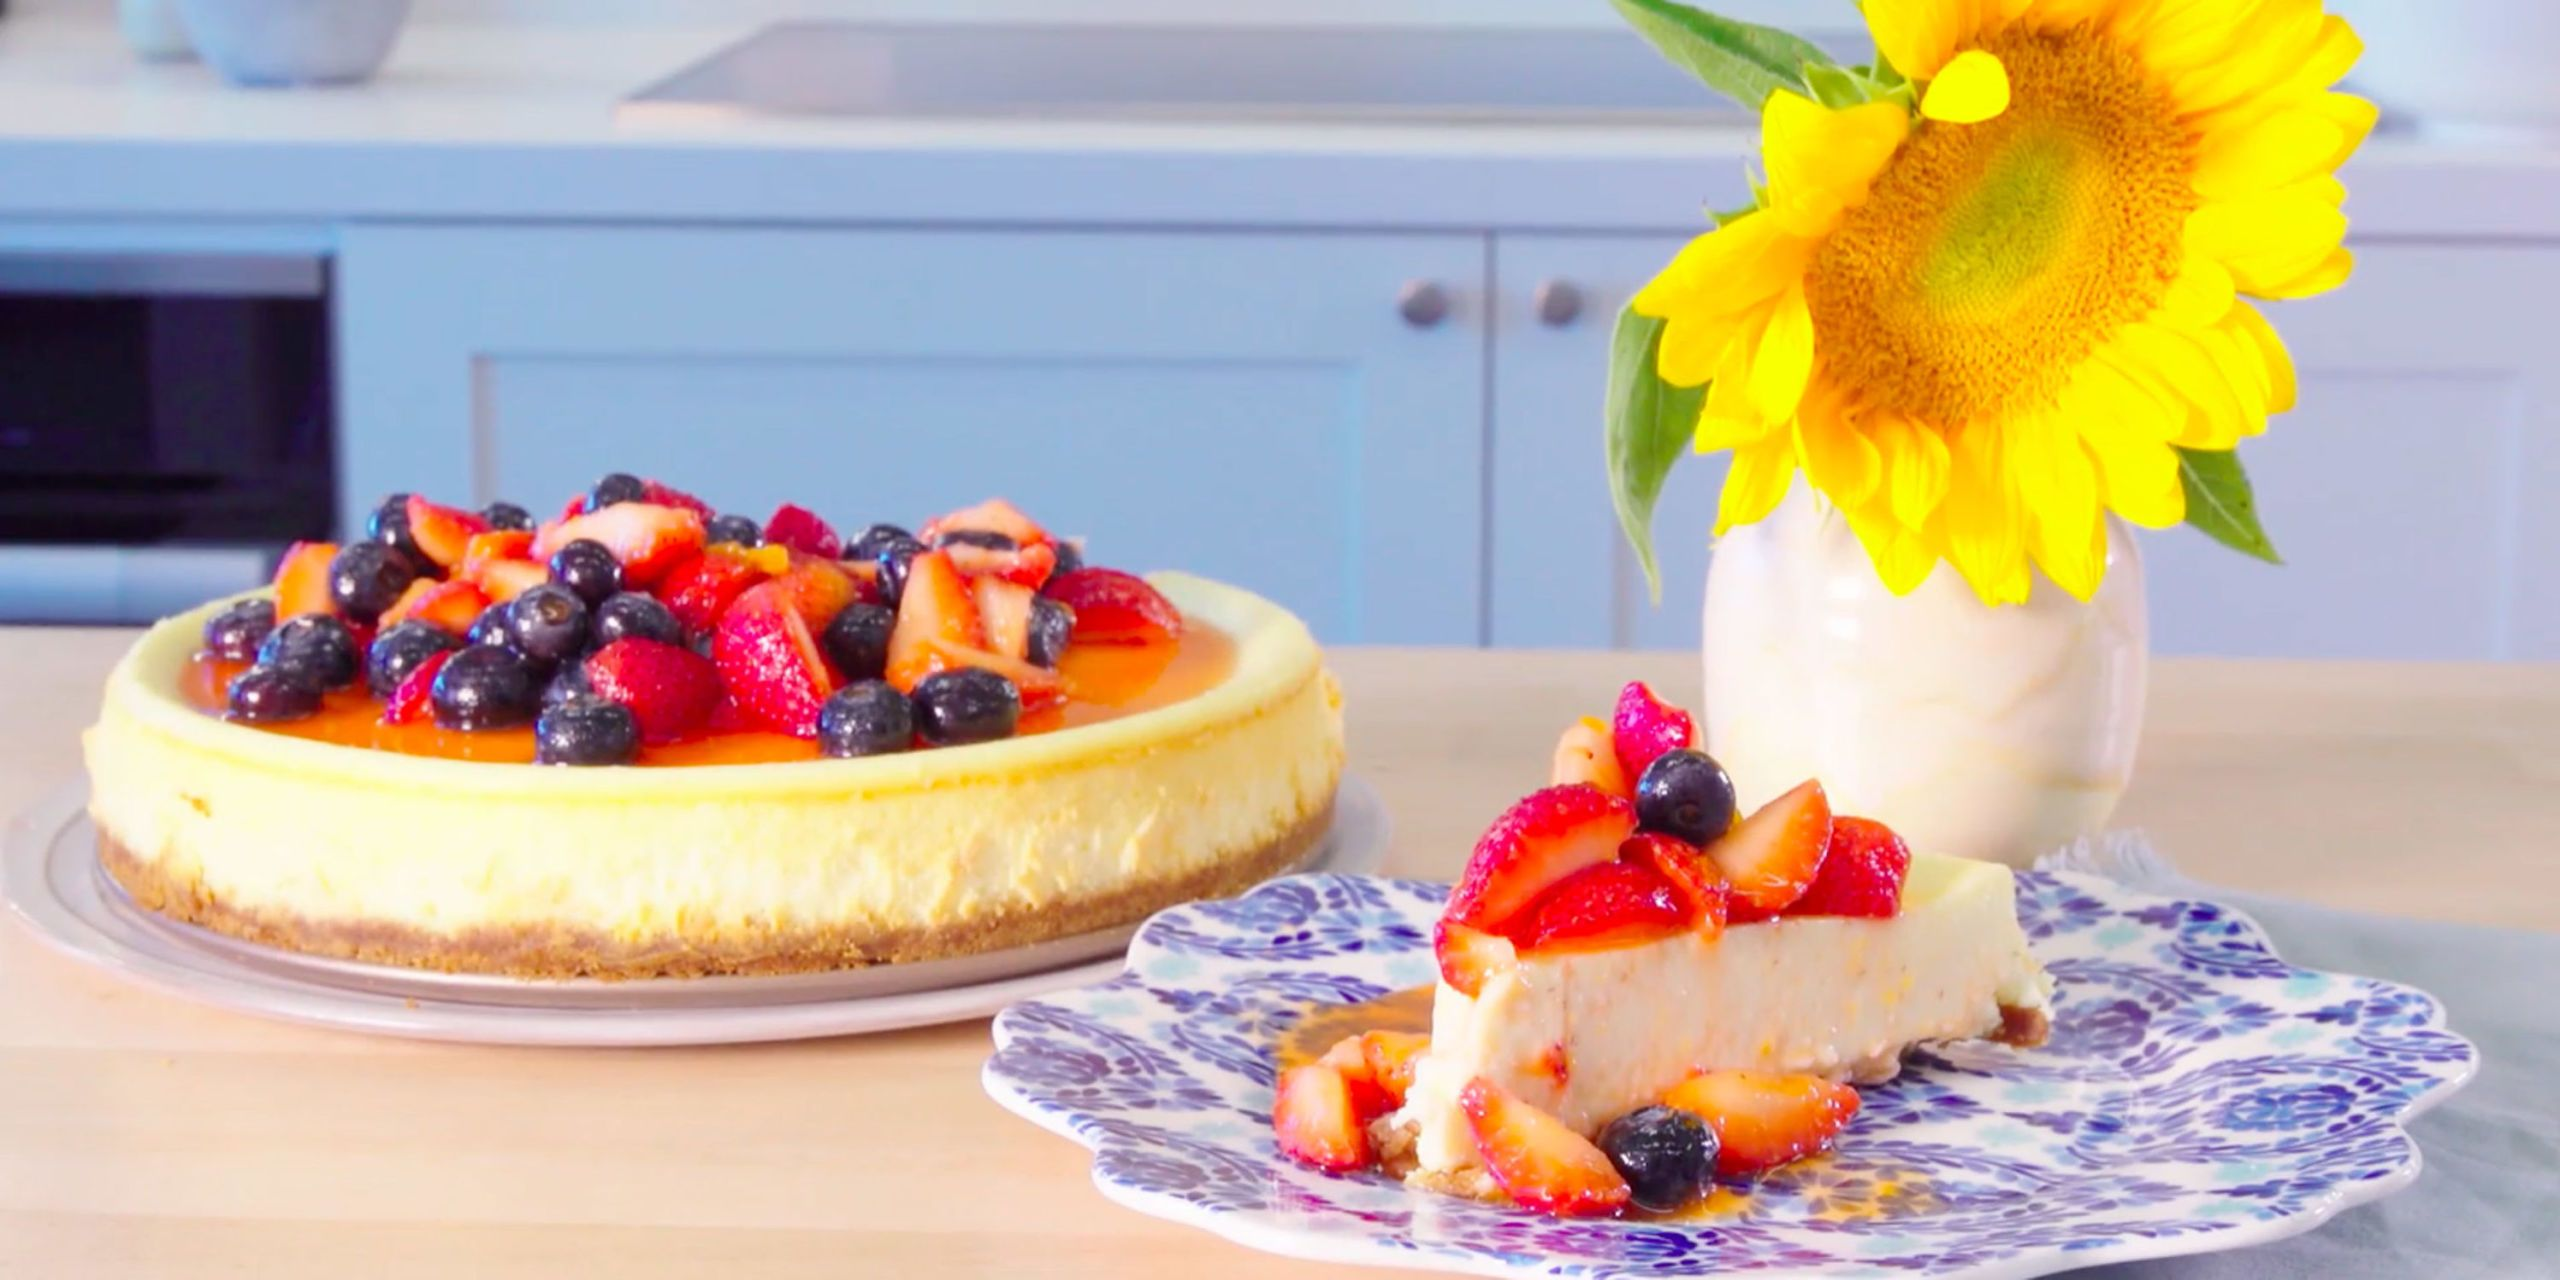 How to make cheesecake from scratch recipe